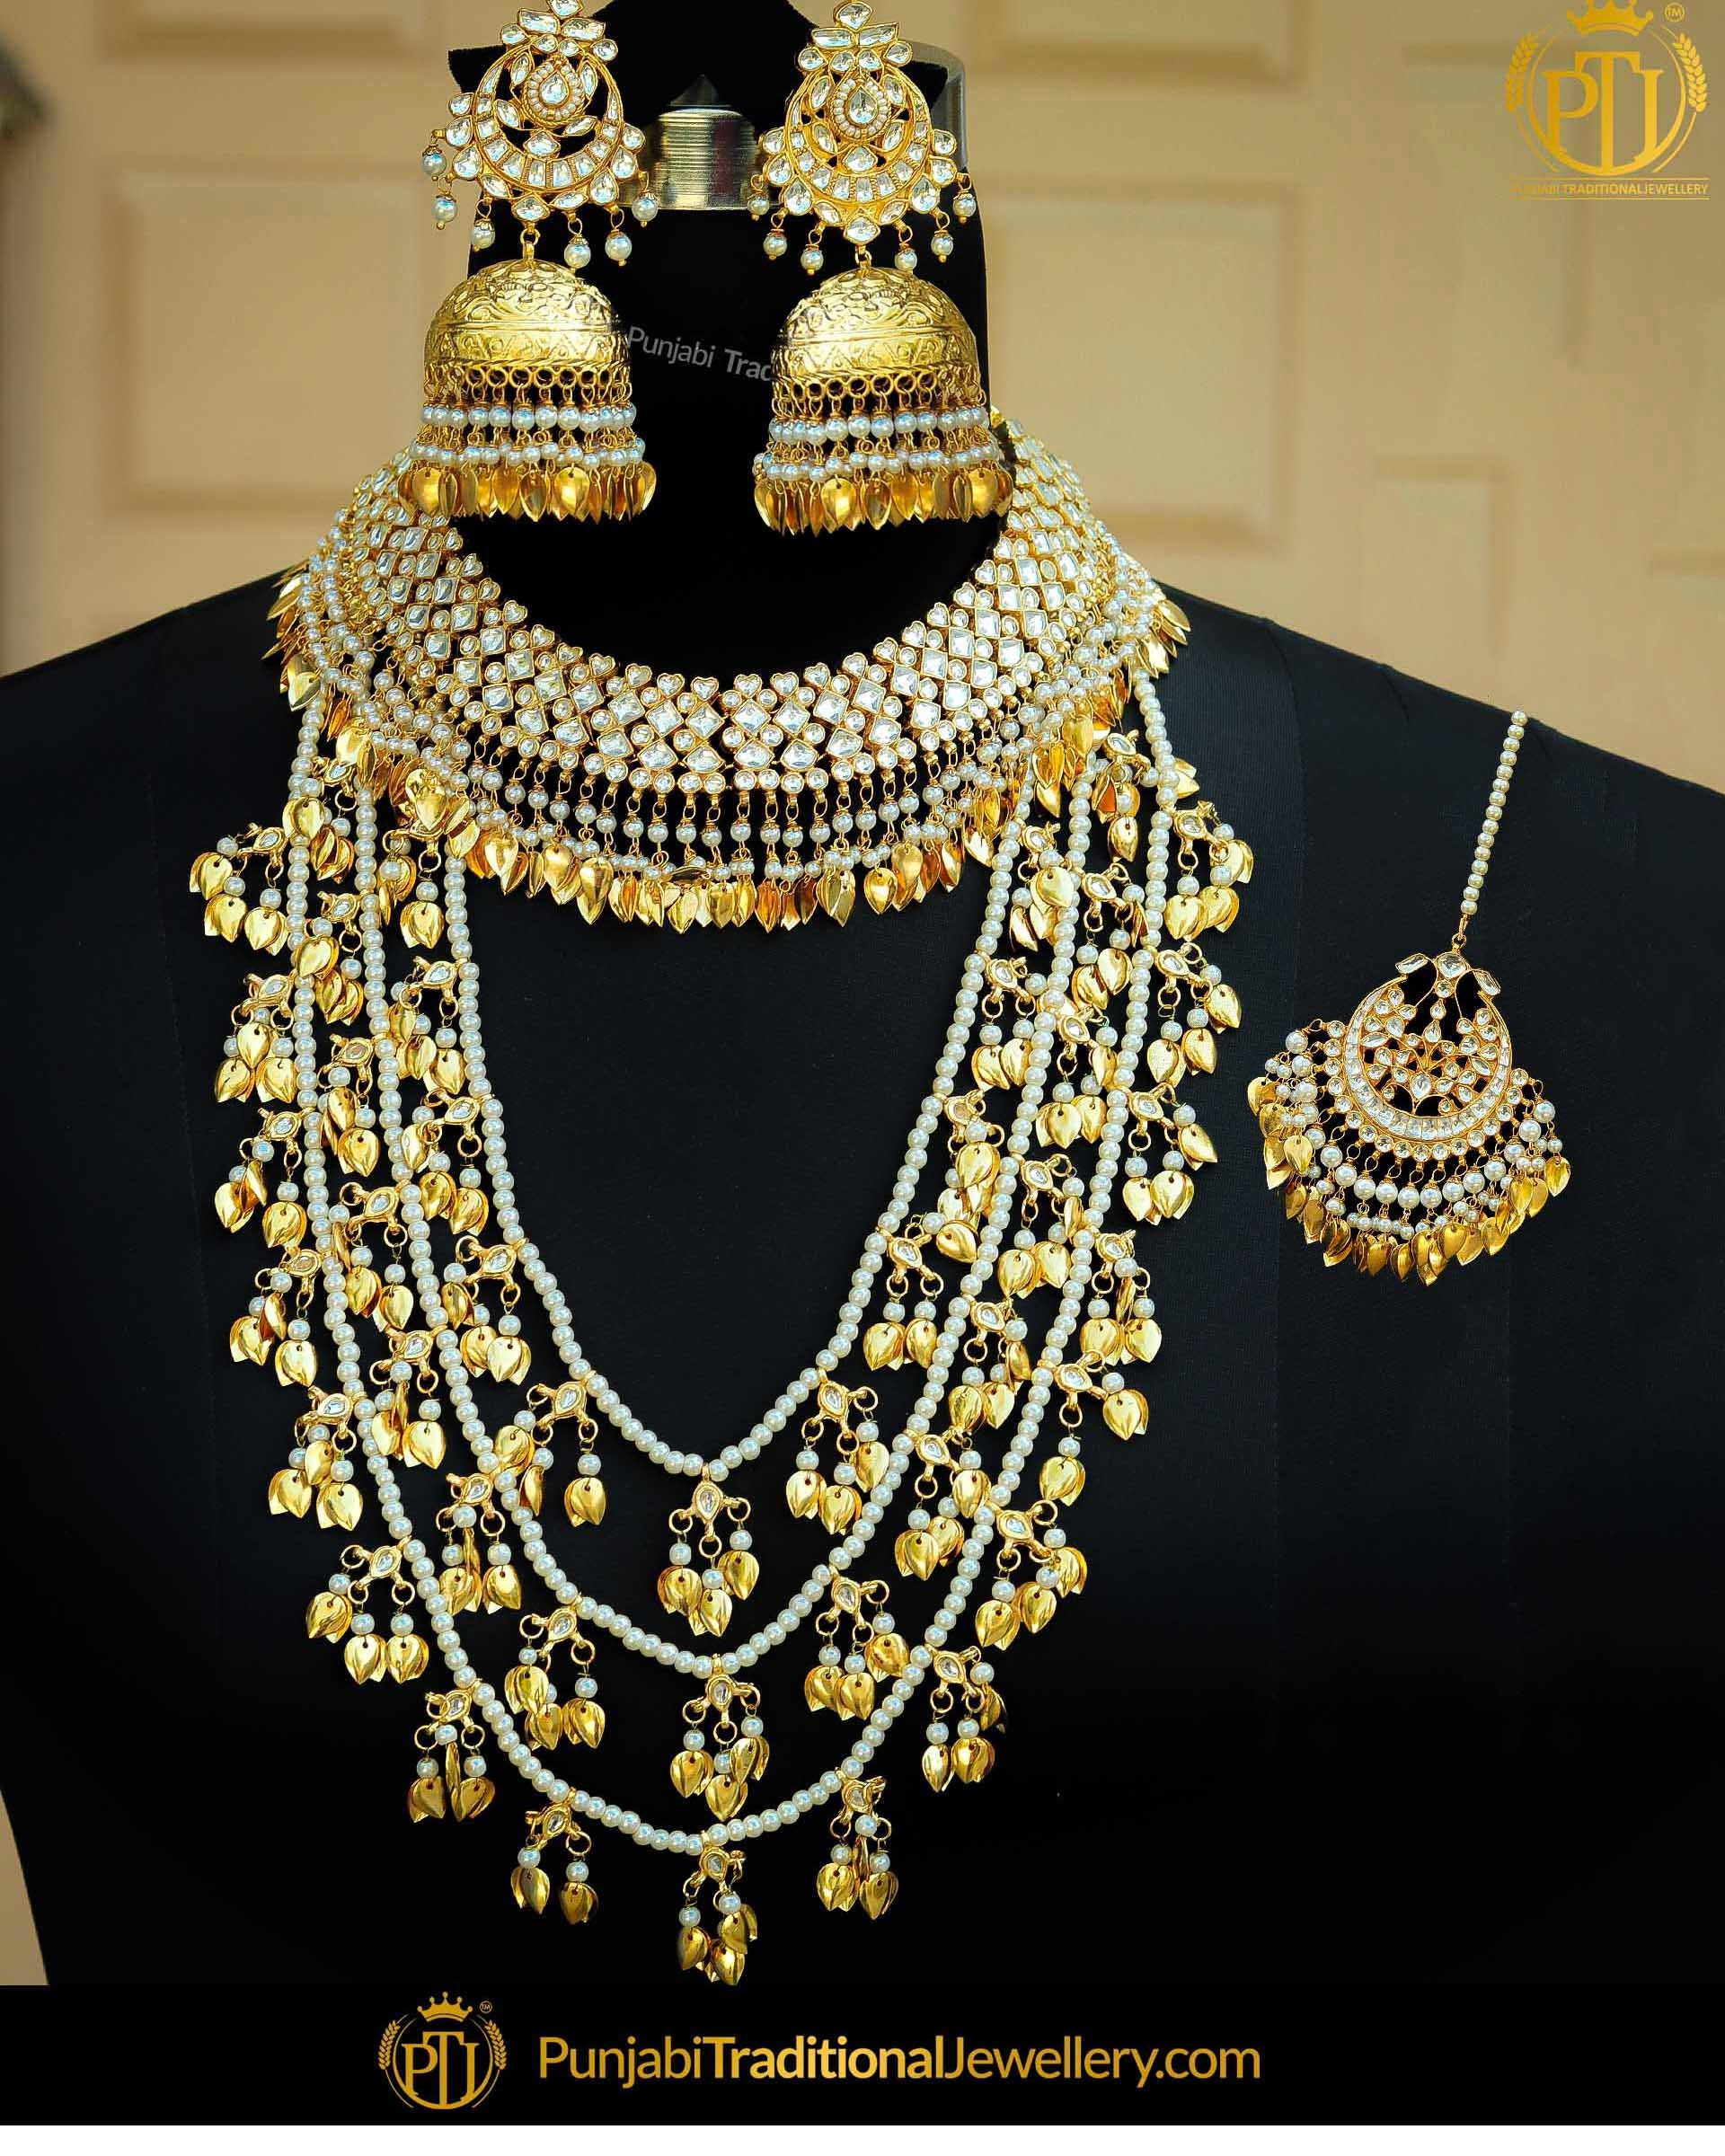 a6c4dd892b18f Gold Finished Kundan Pippal Patti Pearl Bridal Necklace Set | Punjabi  Traditional Jewellery Exclusive